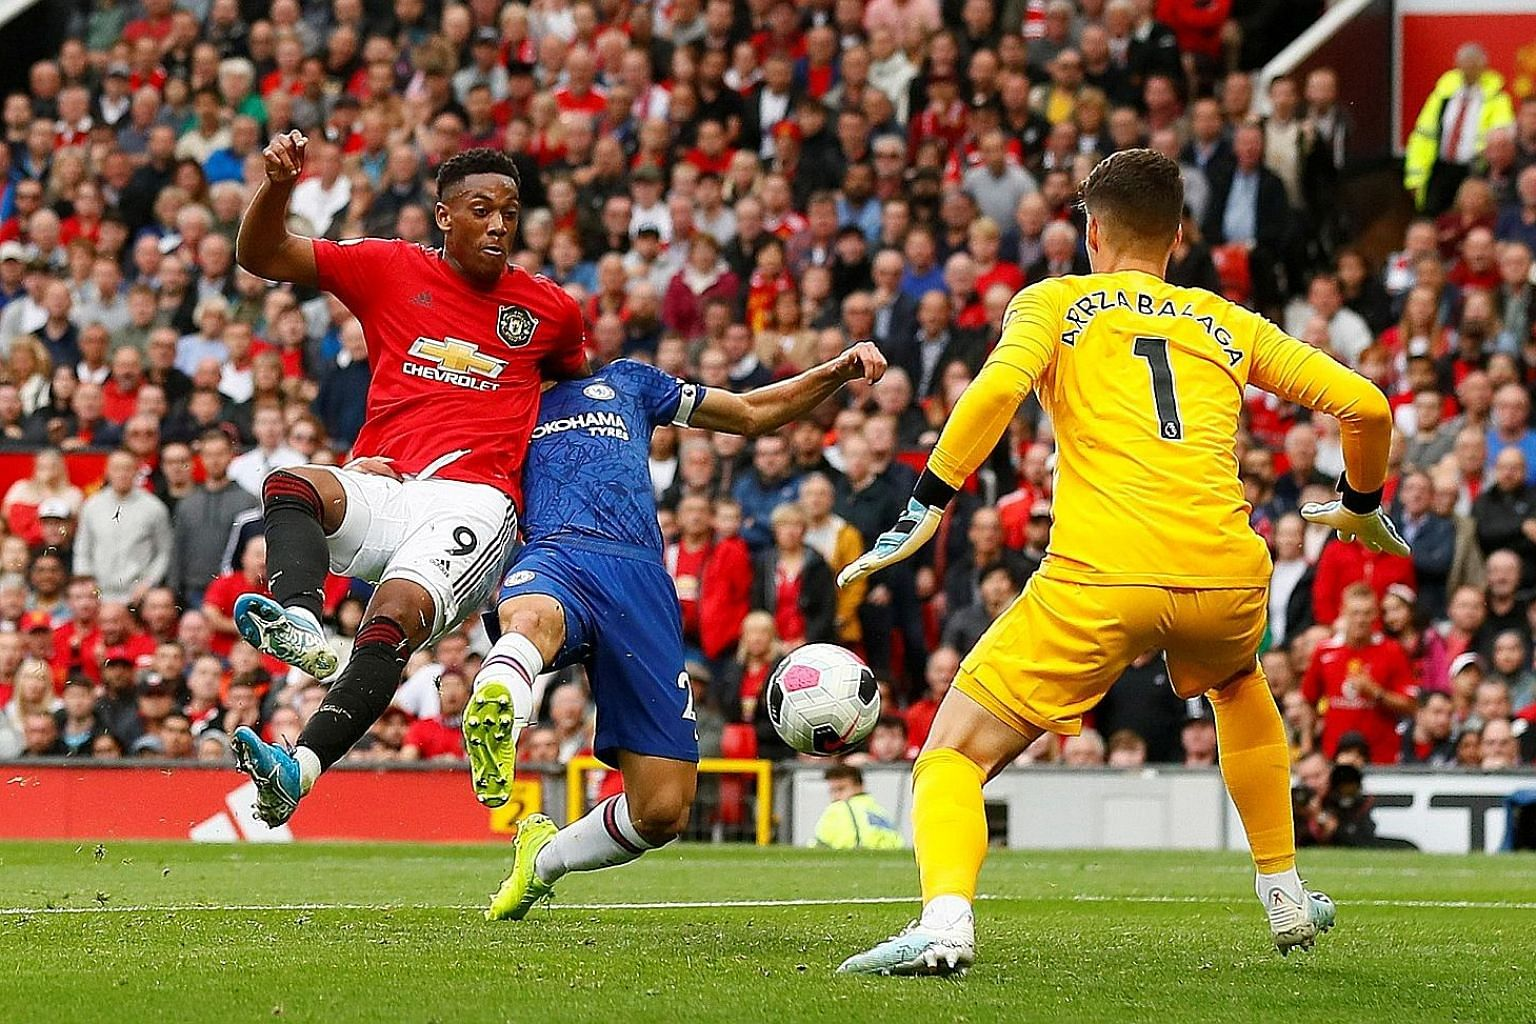 Anthony Martial holding off a challenge from Cesar Azpilicueta to knock home their second goal past Chelsea goalkeeper Kepa.